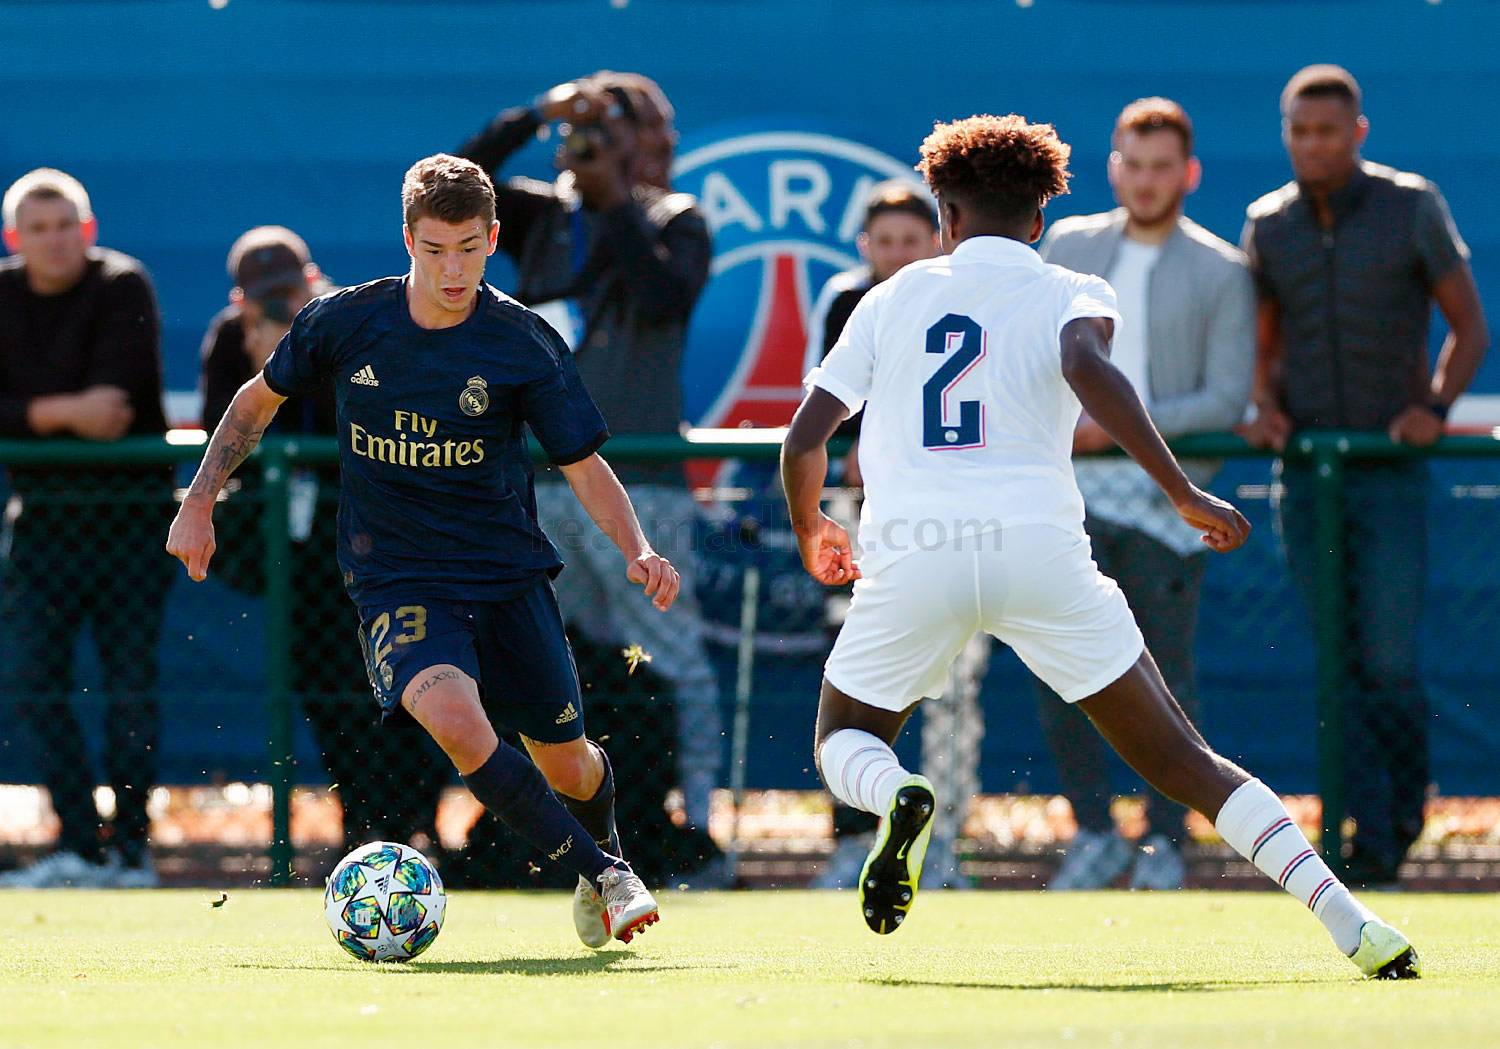 Real Madrid - PSG - Juvenil A - 18-09-2019